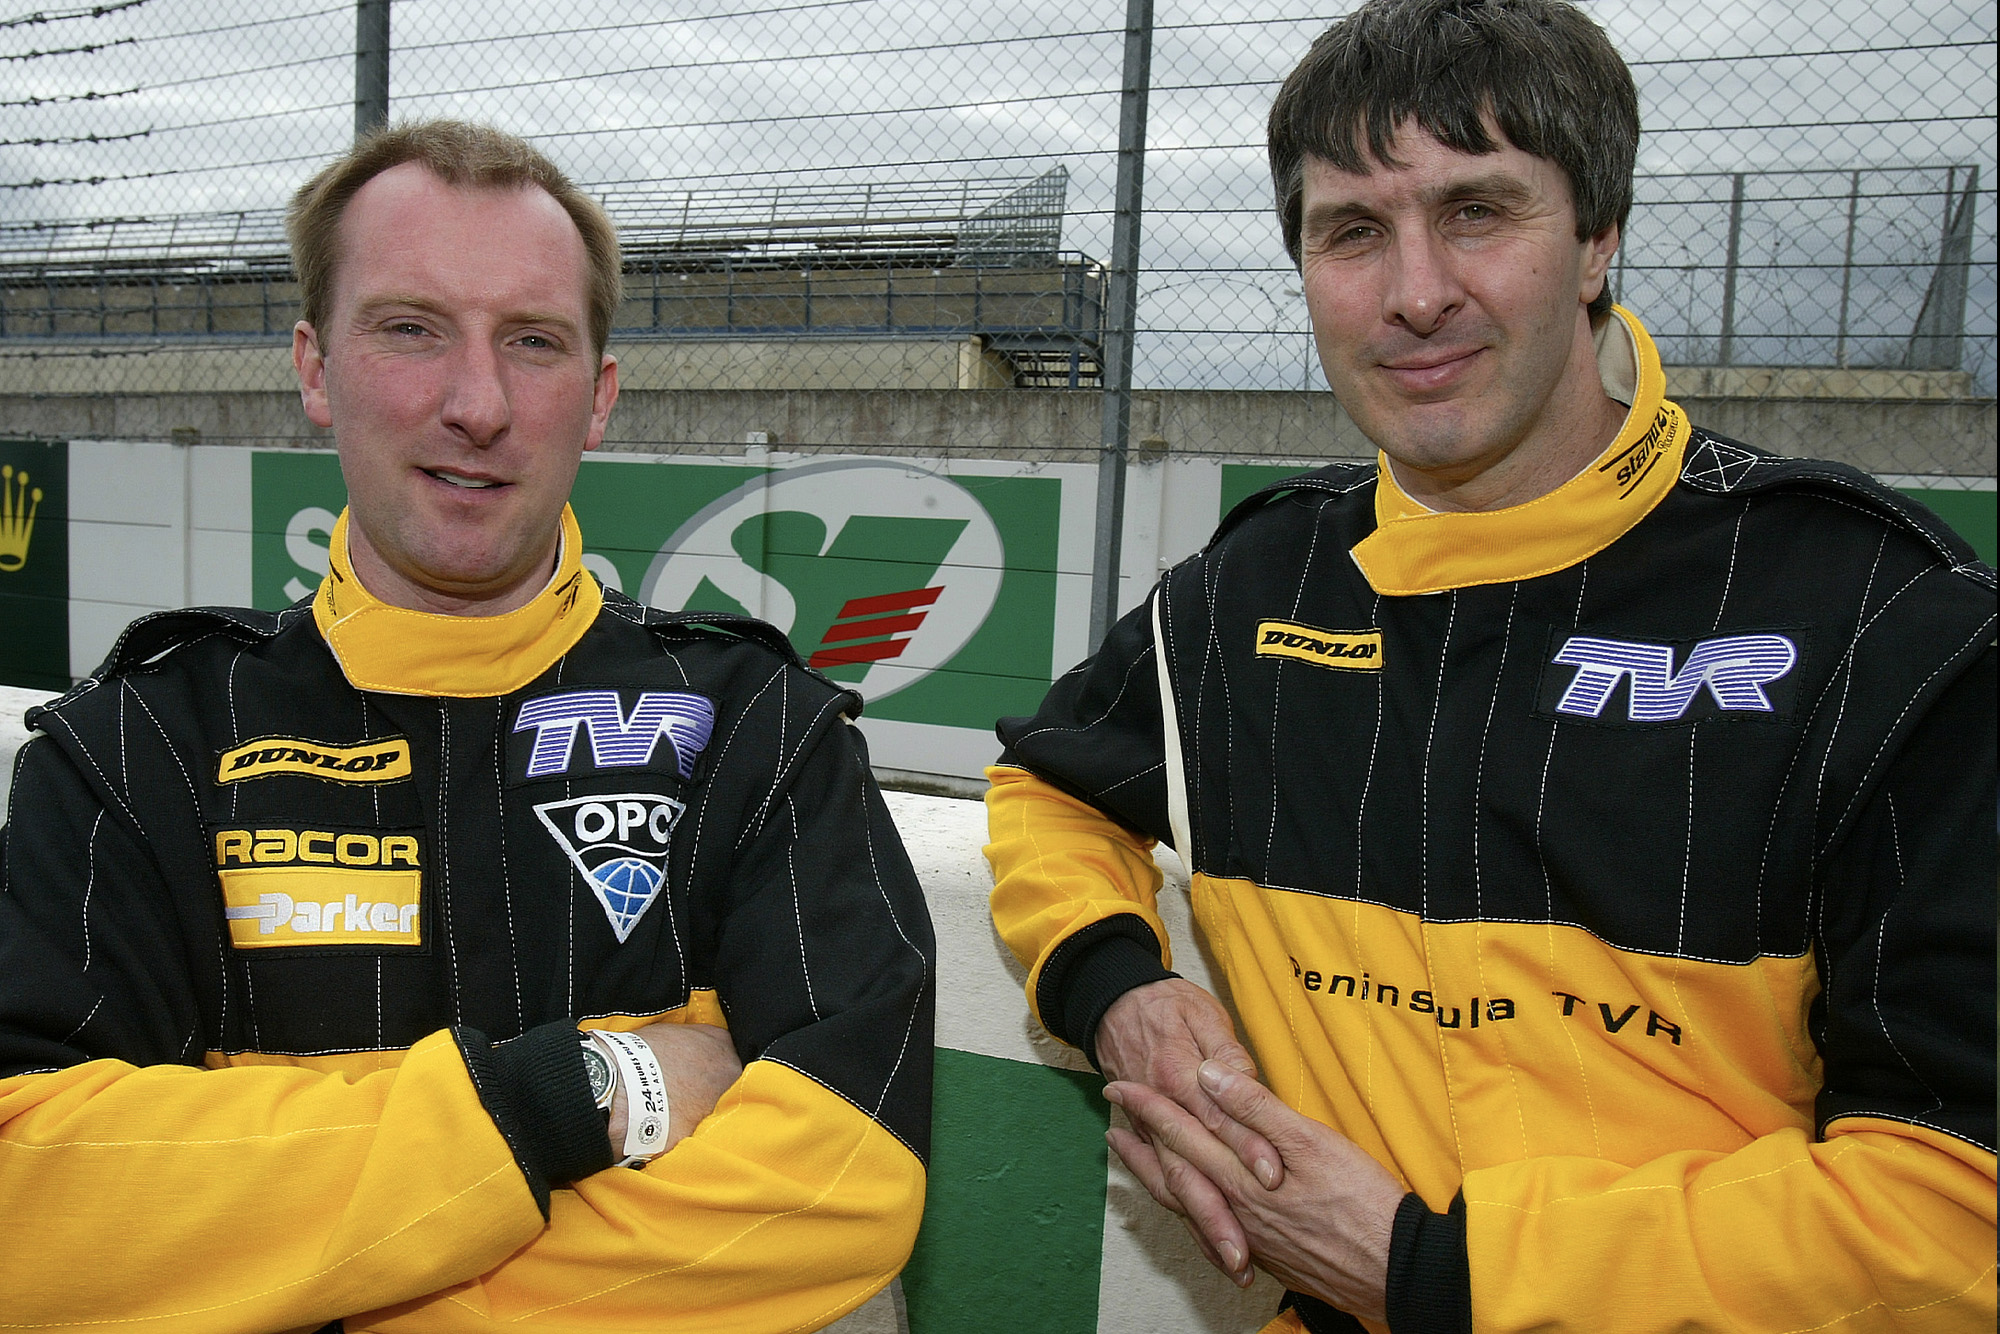 John Hartshorne and Piers Johnson at Le Mans in 2005